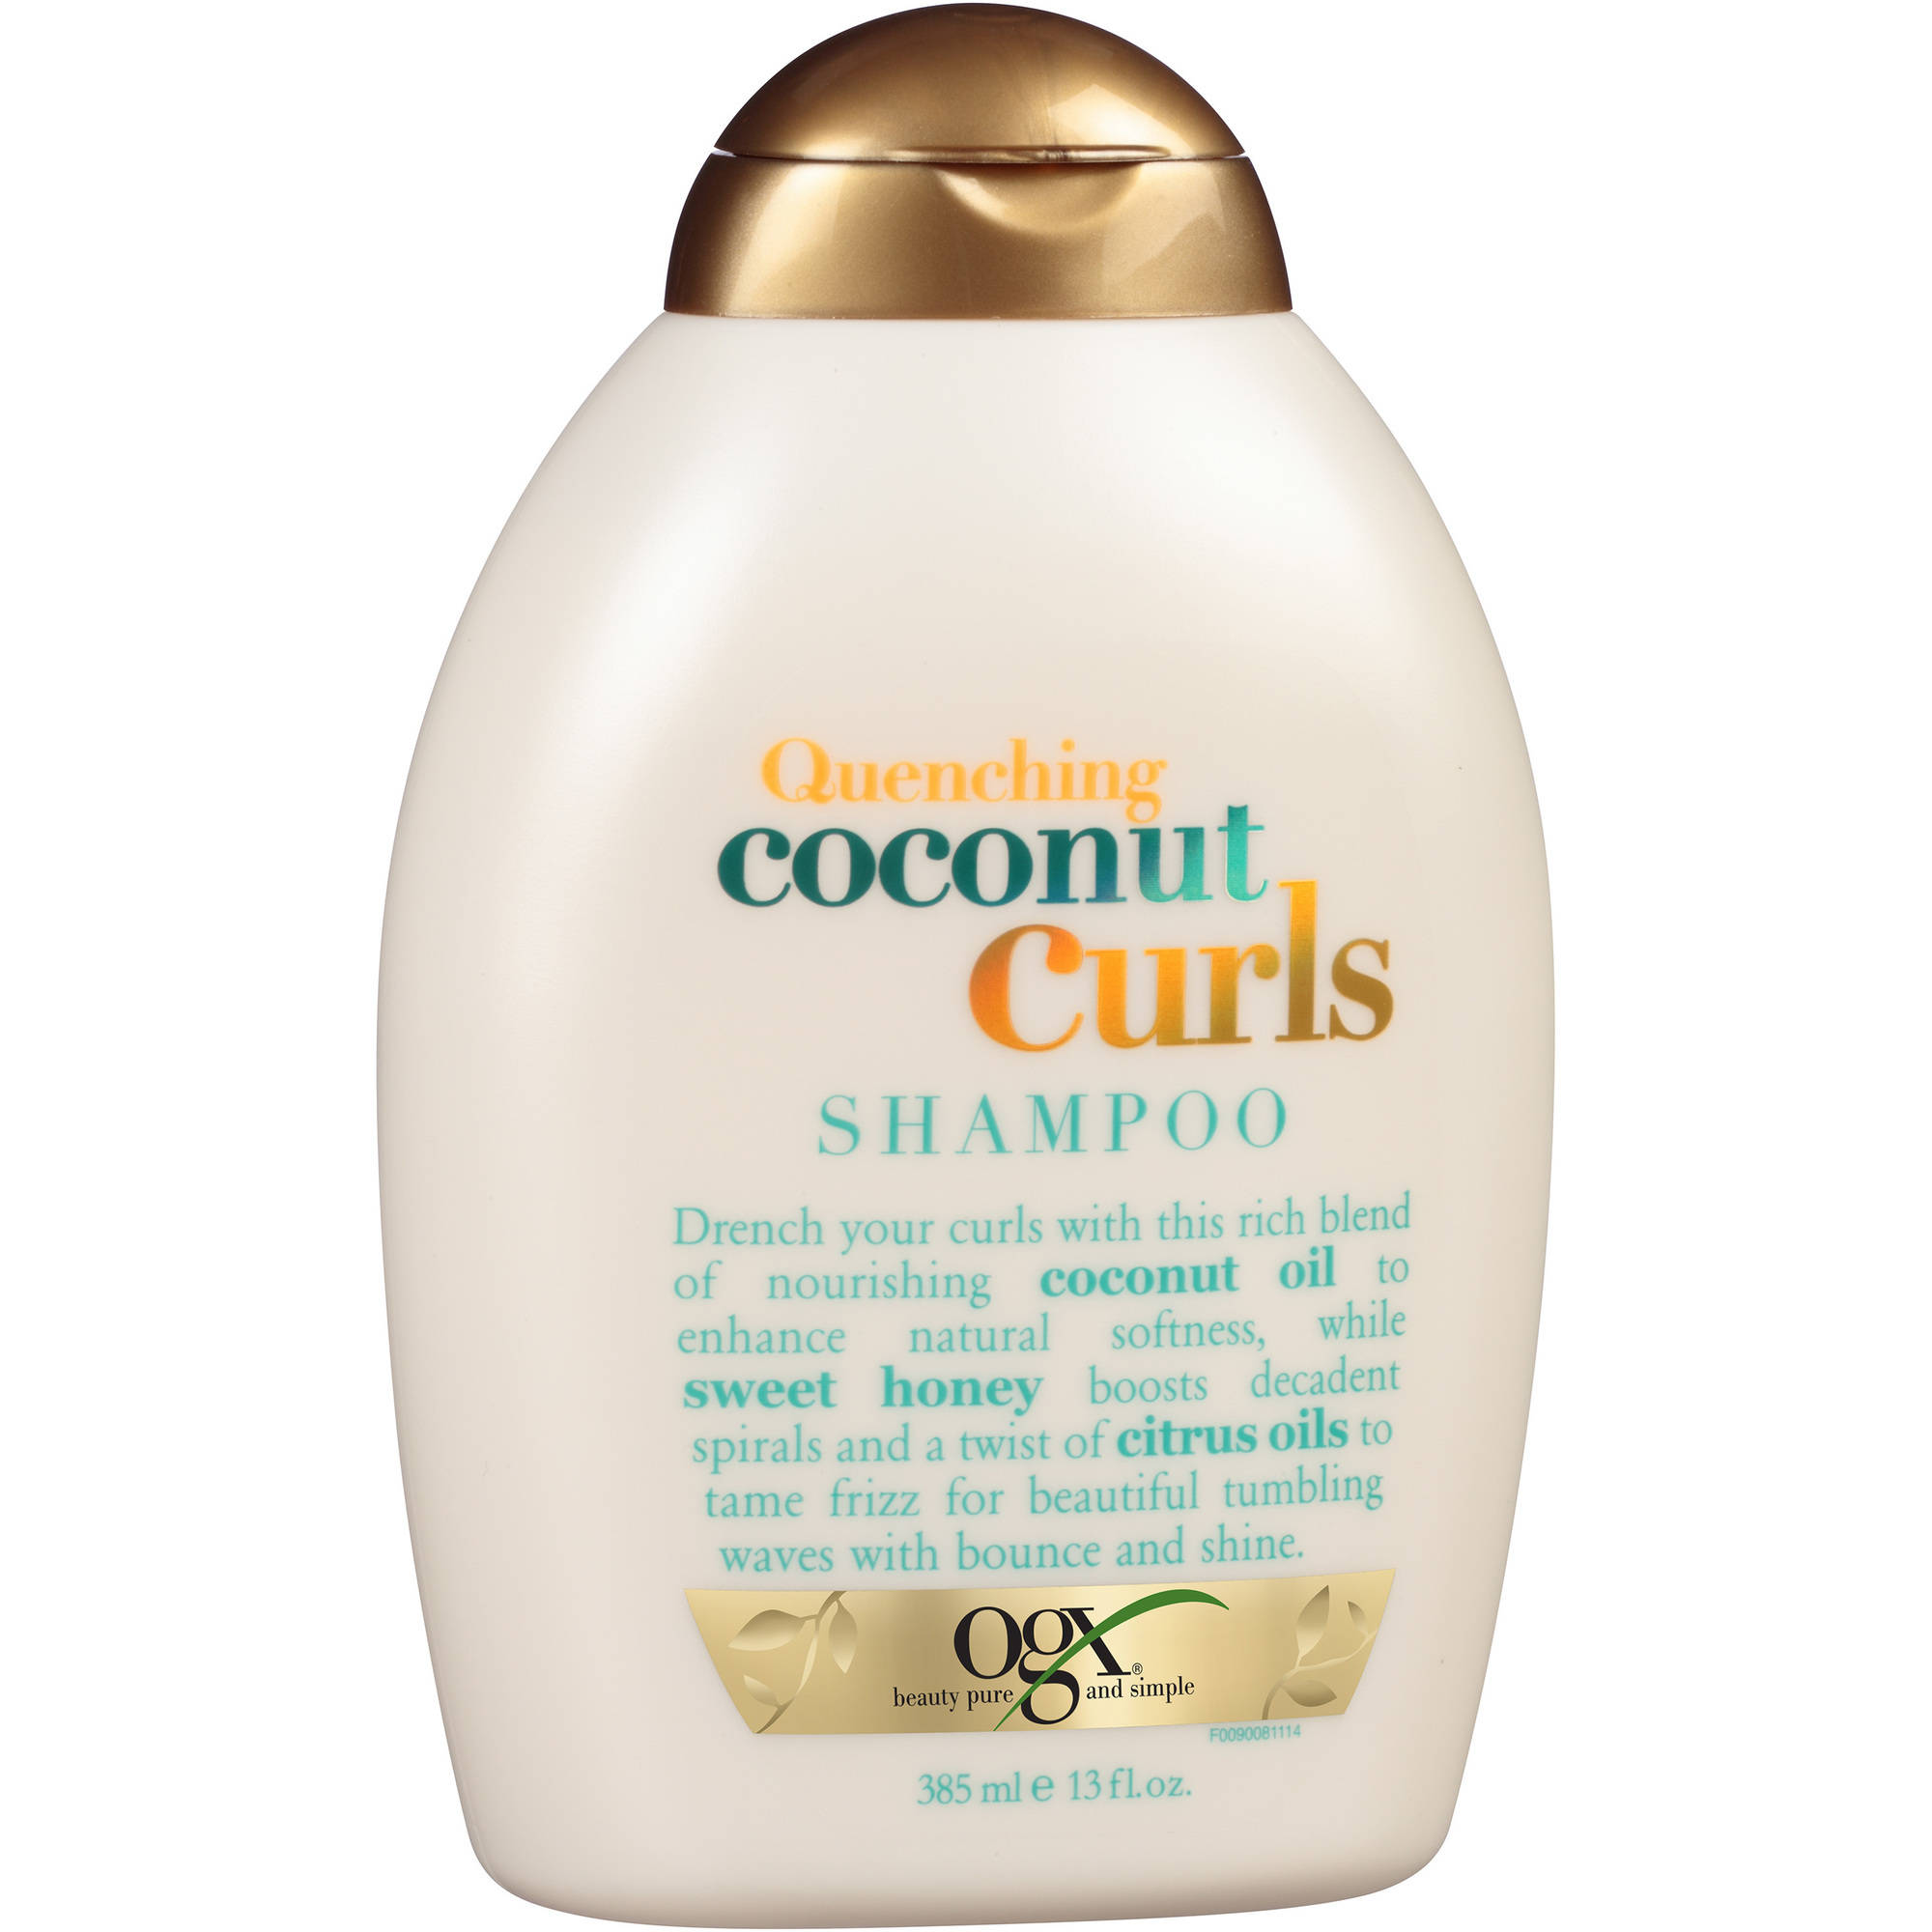 OGX Quenching Coconut Curls Shampoo, 13 fl oz